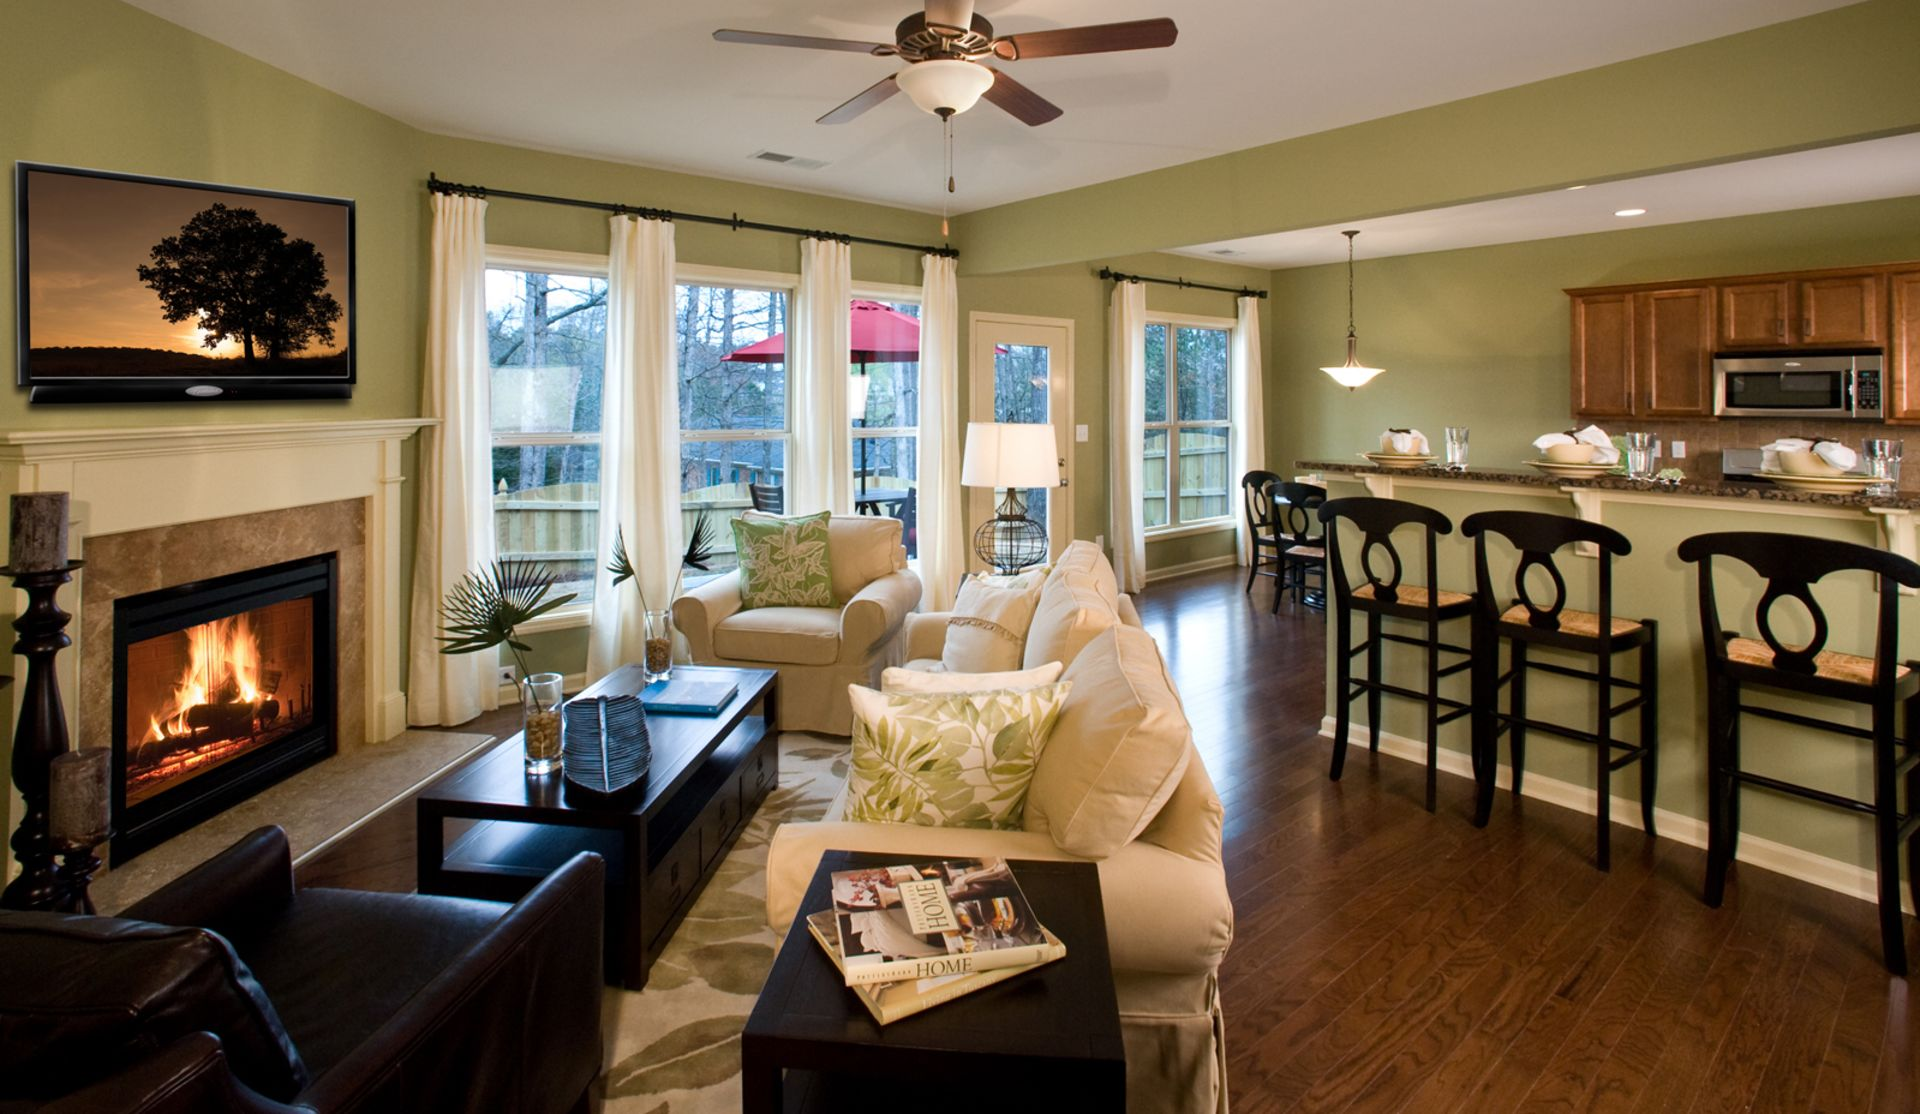 5 Home Staging Tips